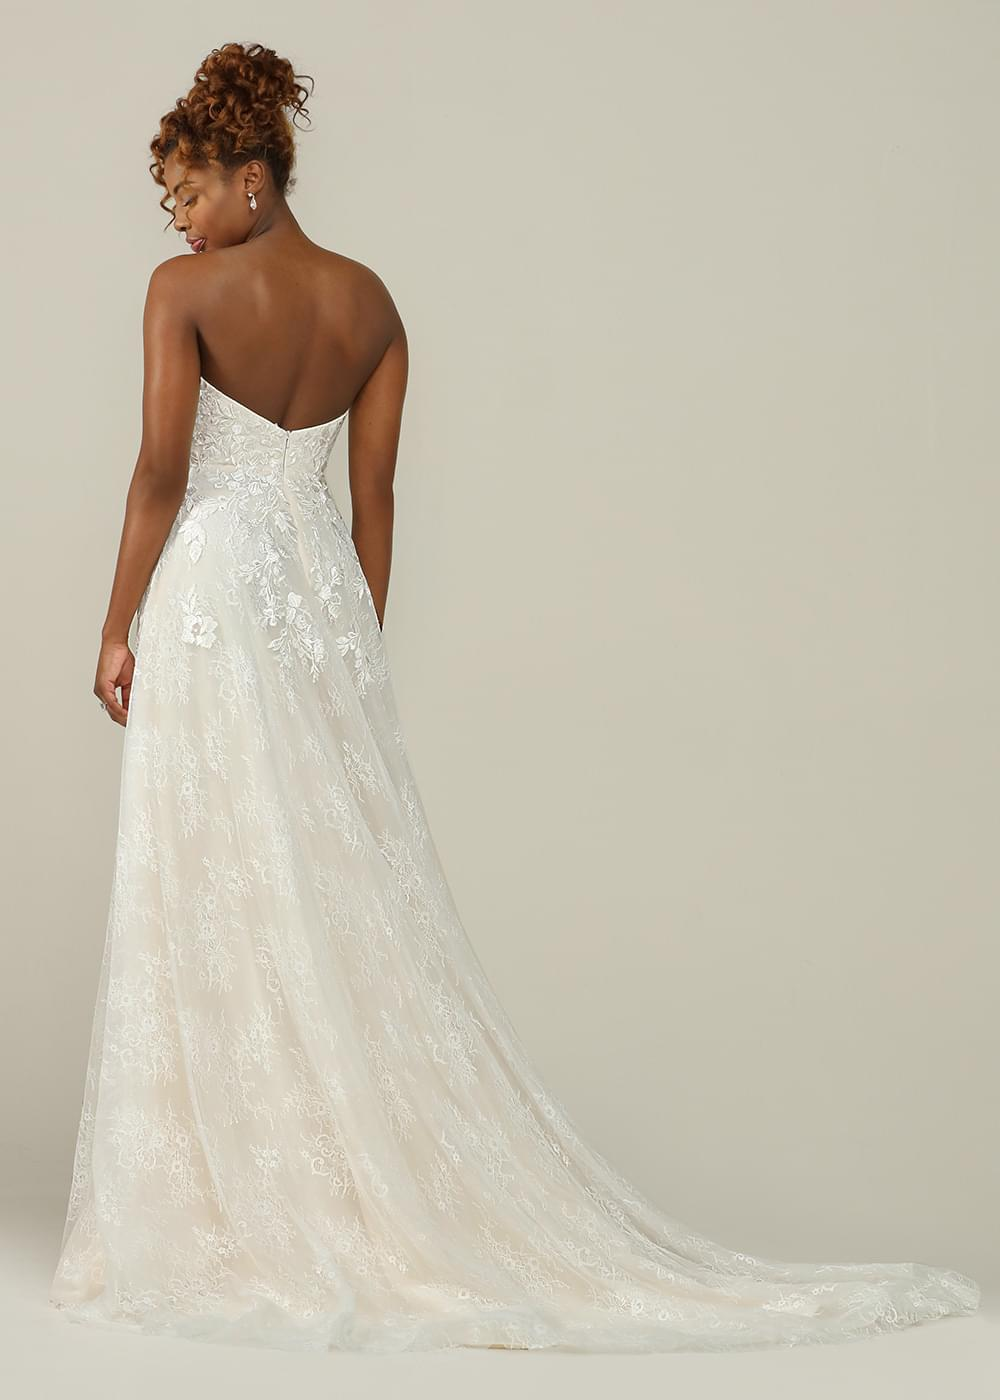 Kimberly Shop All Wedding Dresses By Ashdon